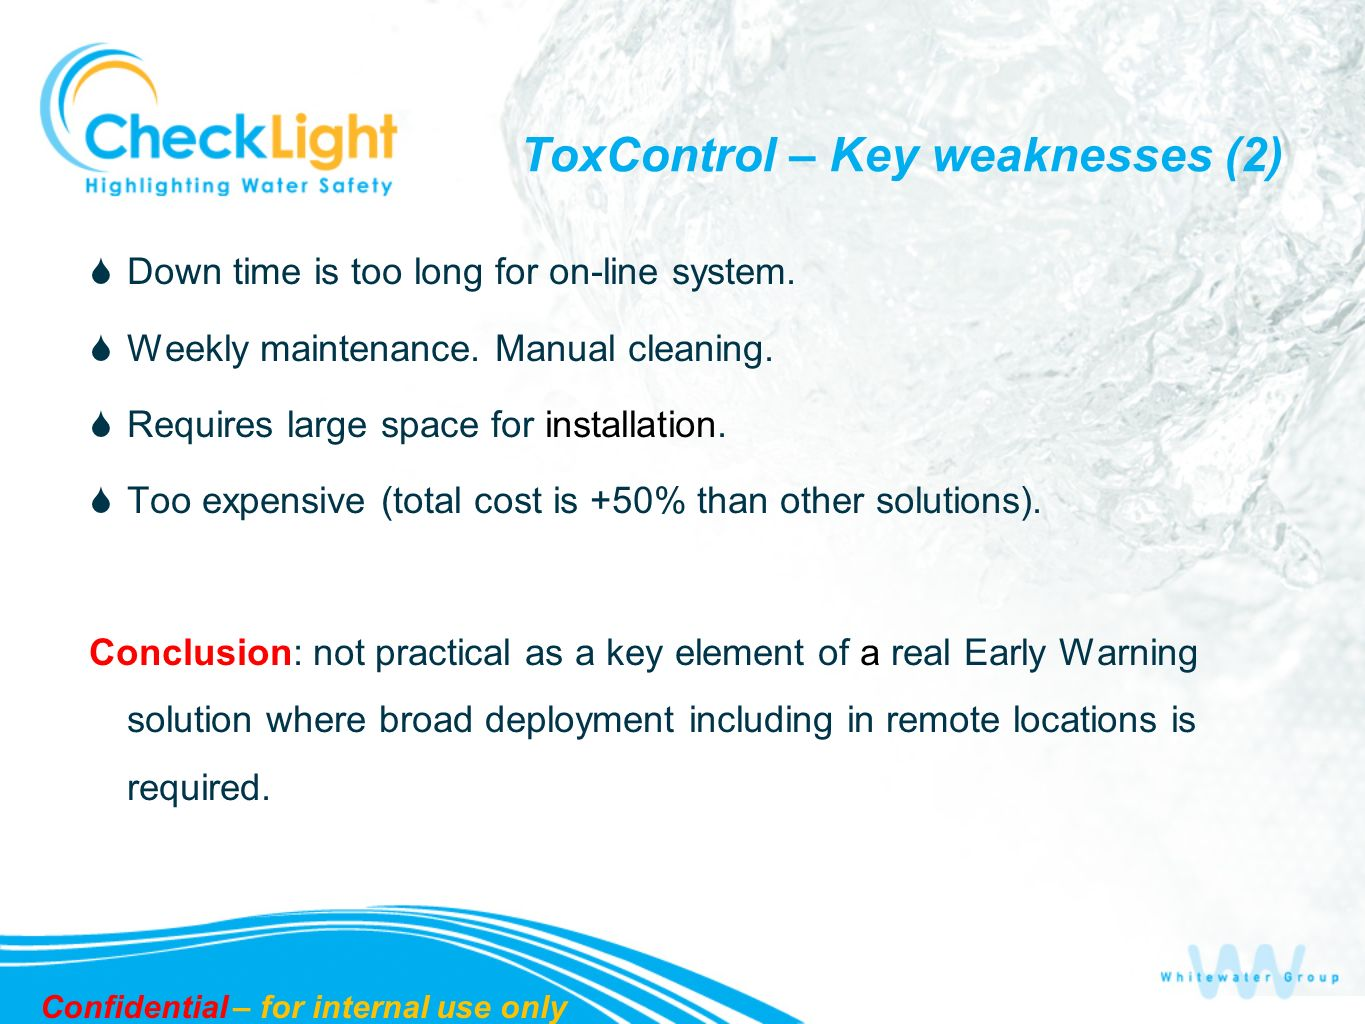 ToxControl – Key weaknesses (2) Down time is too long for on-line system. Weekly maintenance. Manual cleaning. Requires large space for installation.